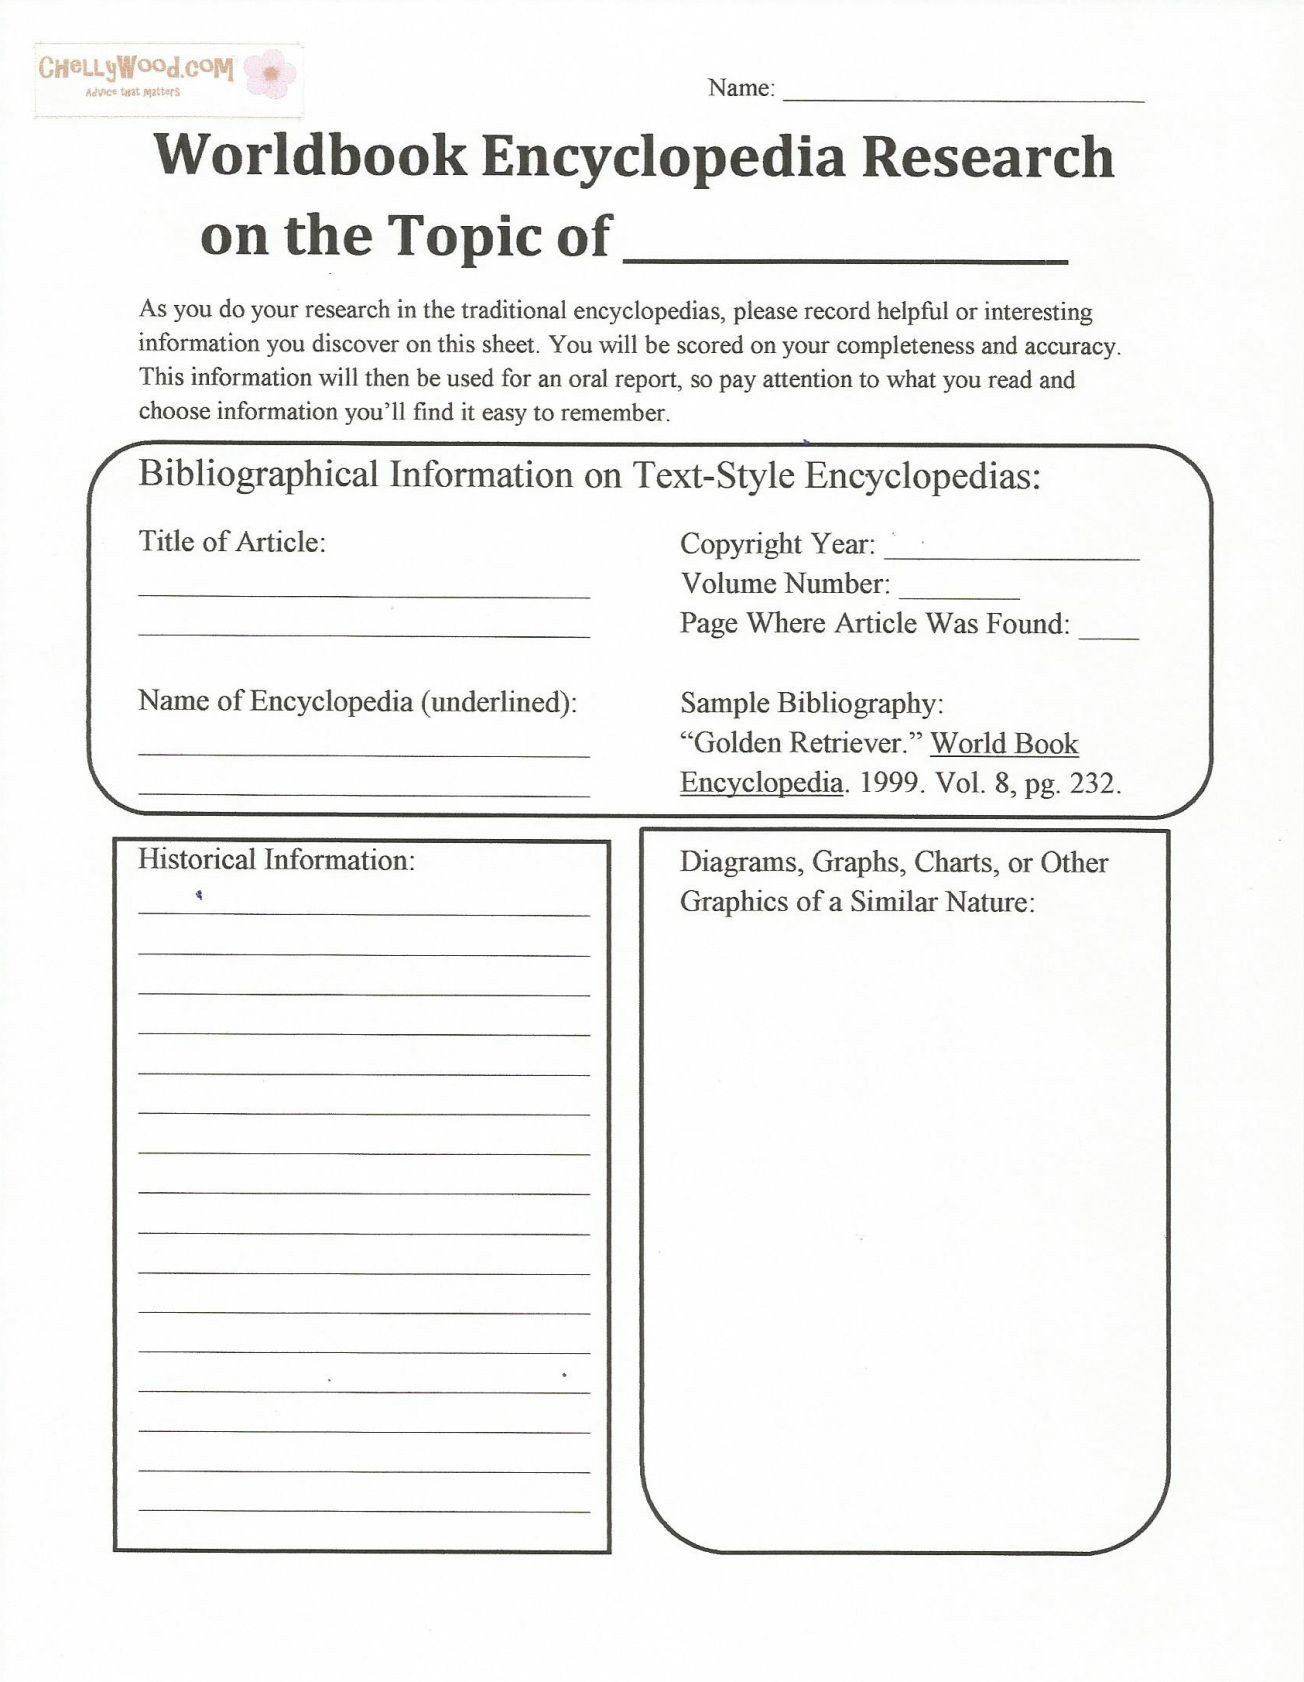 Bibliography Practice Worksheets Free Printable Encyclopedia Handout for Teaching Research